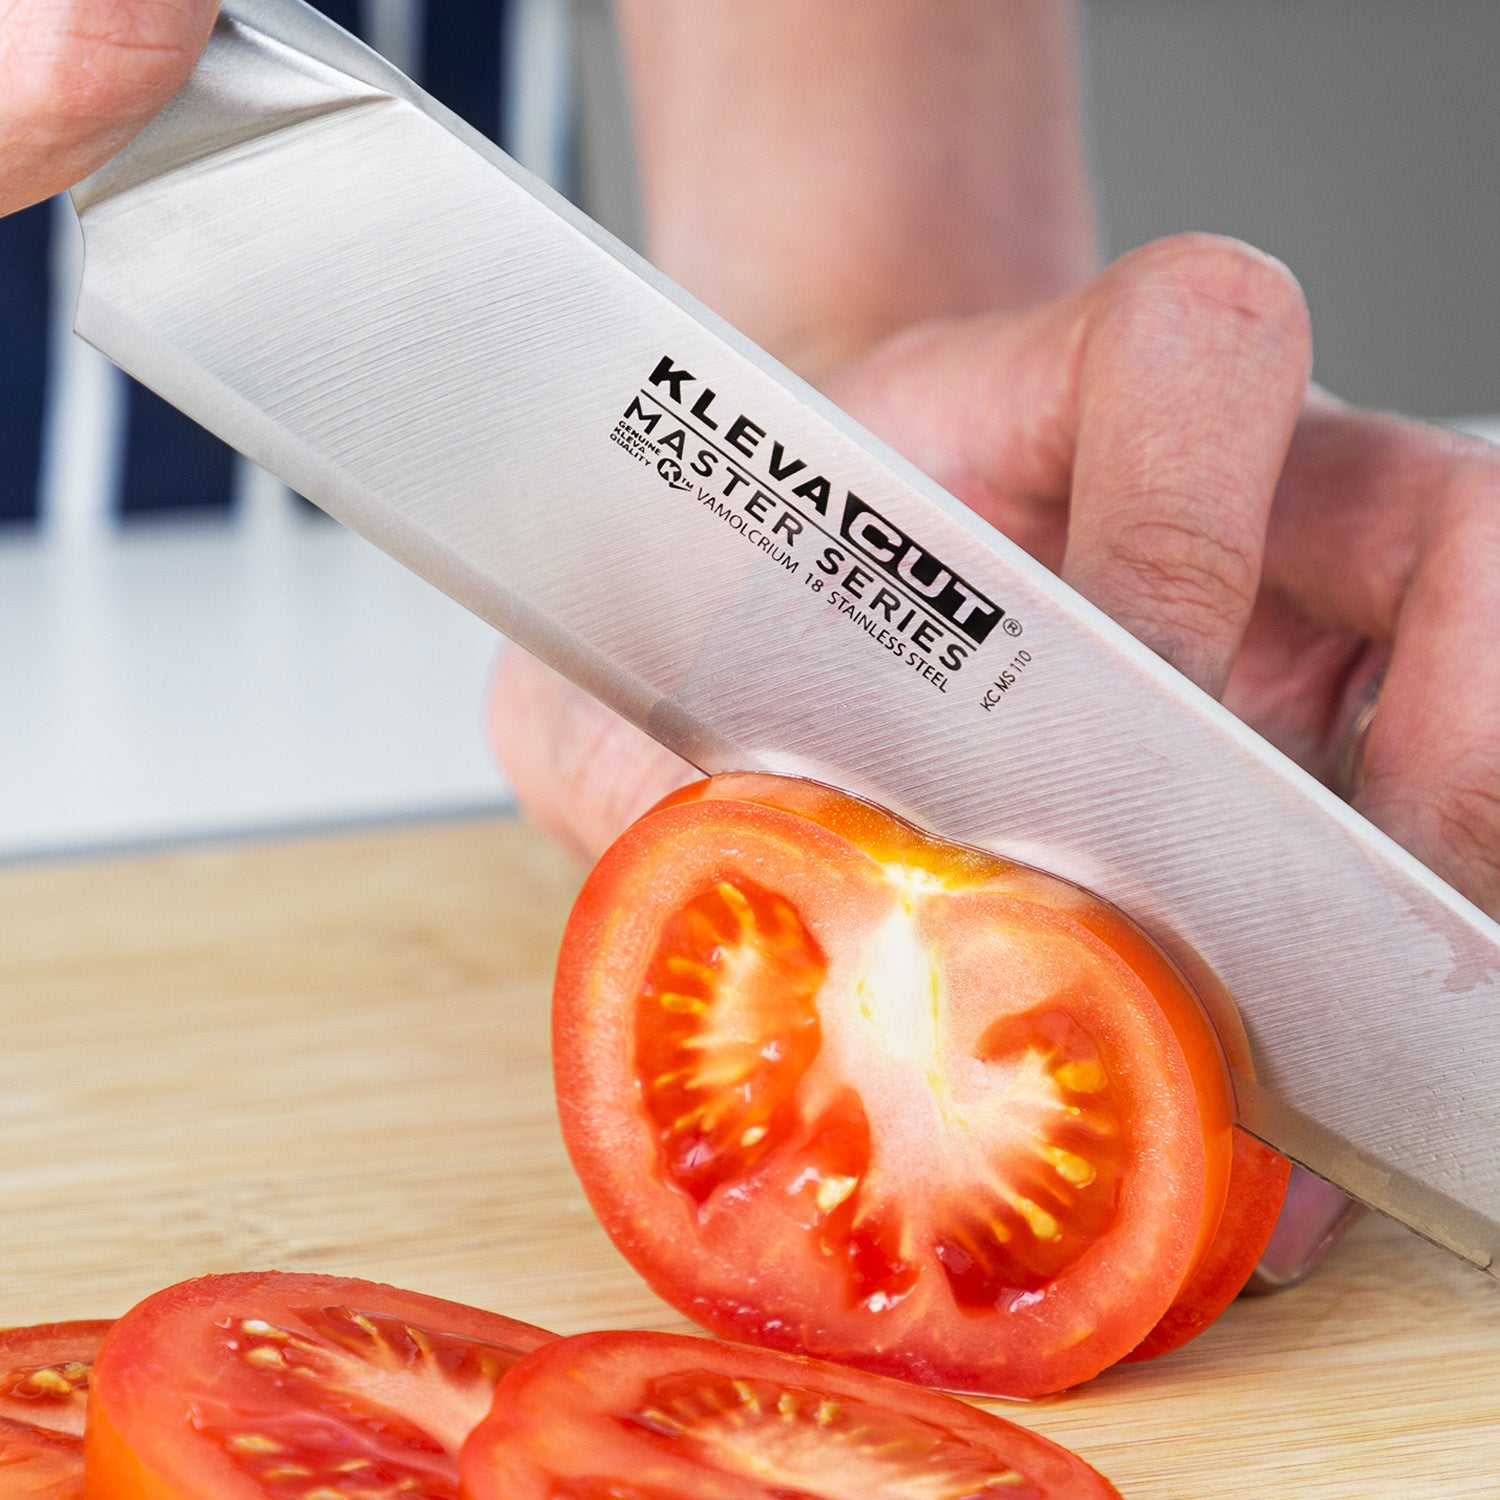 Kleva Cut Master Series Chef Knife slicing a tomato